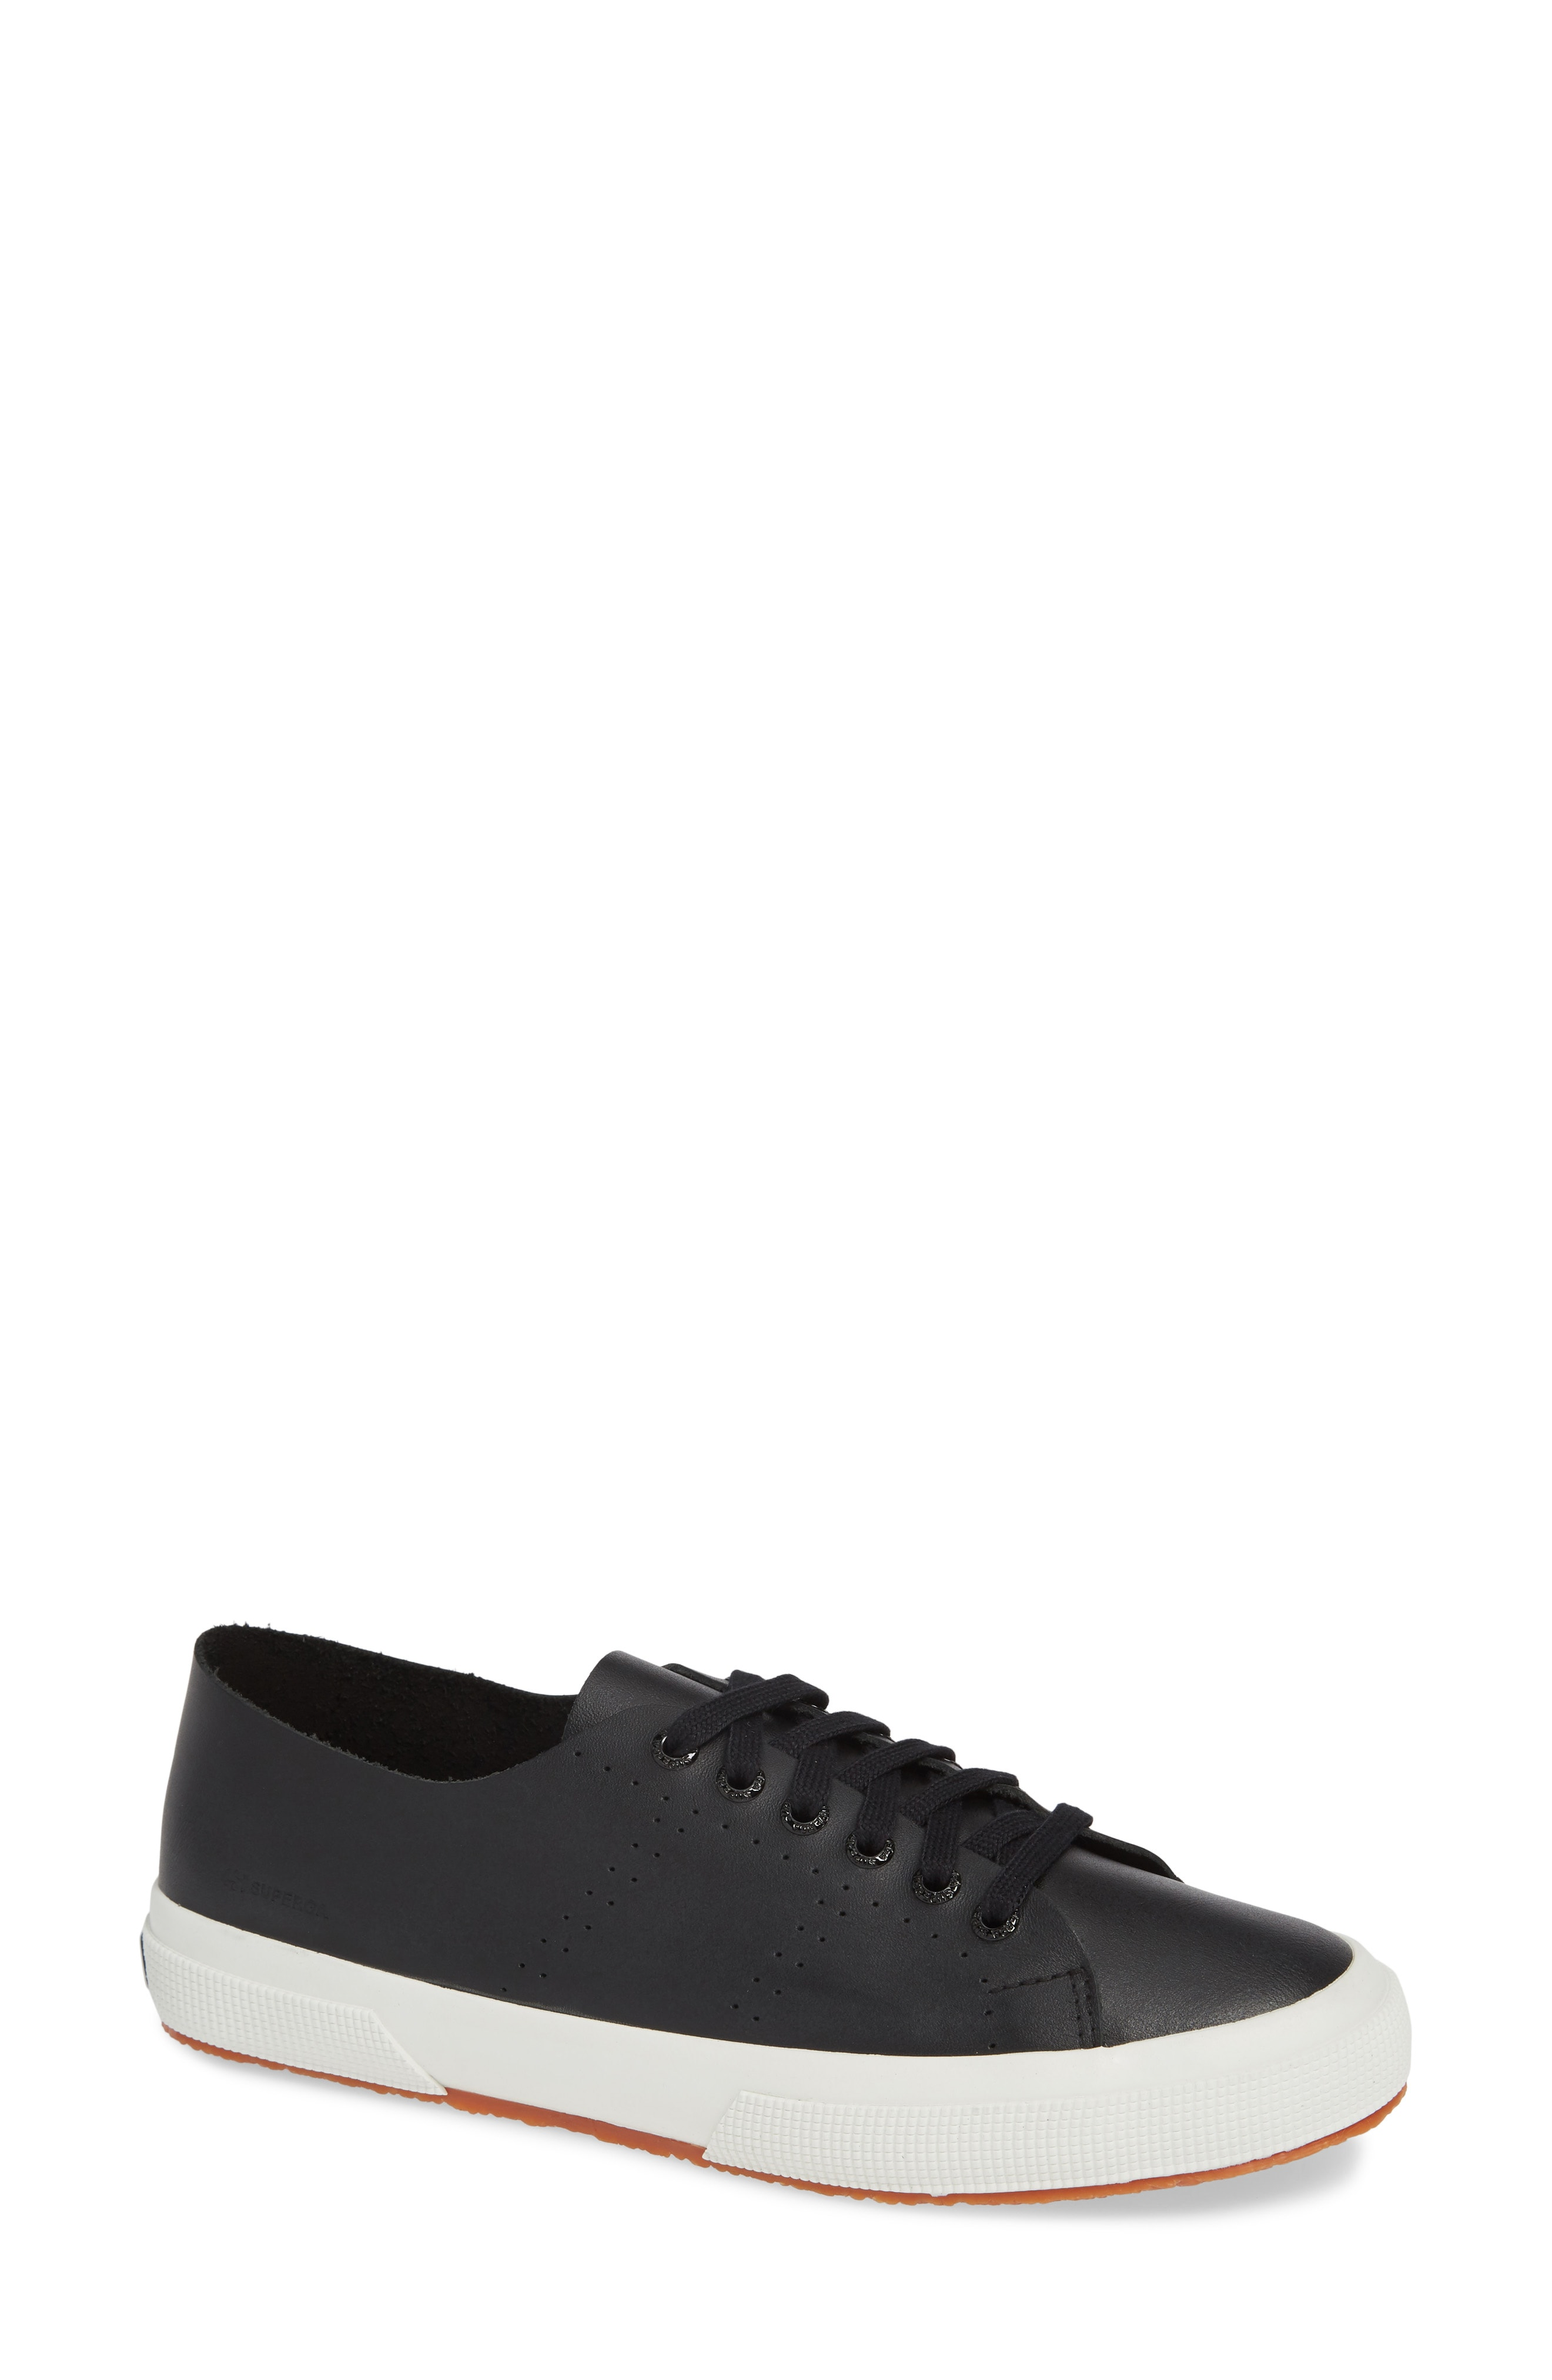 Superga Shoes & Sneakers   Nordstrom